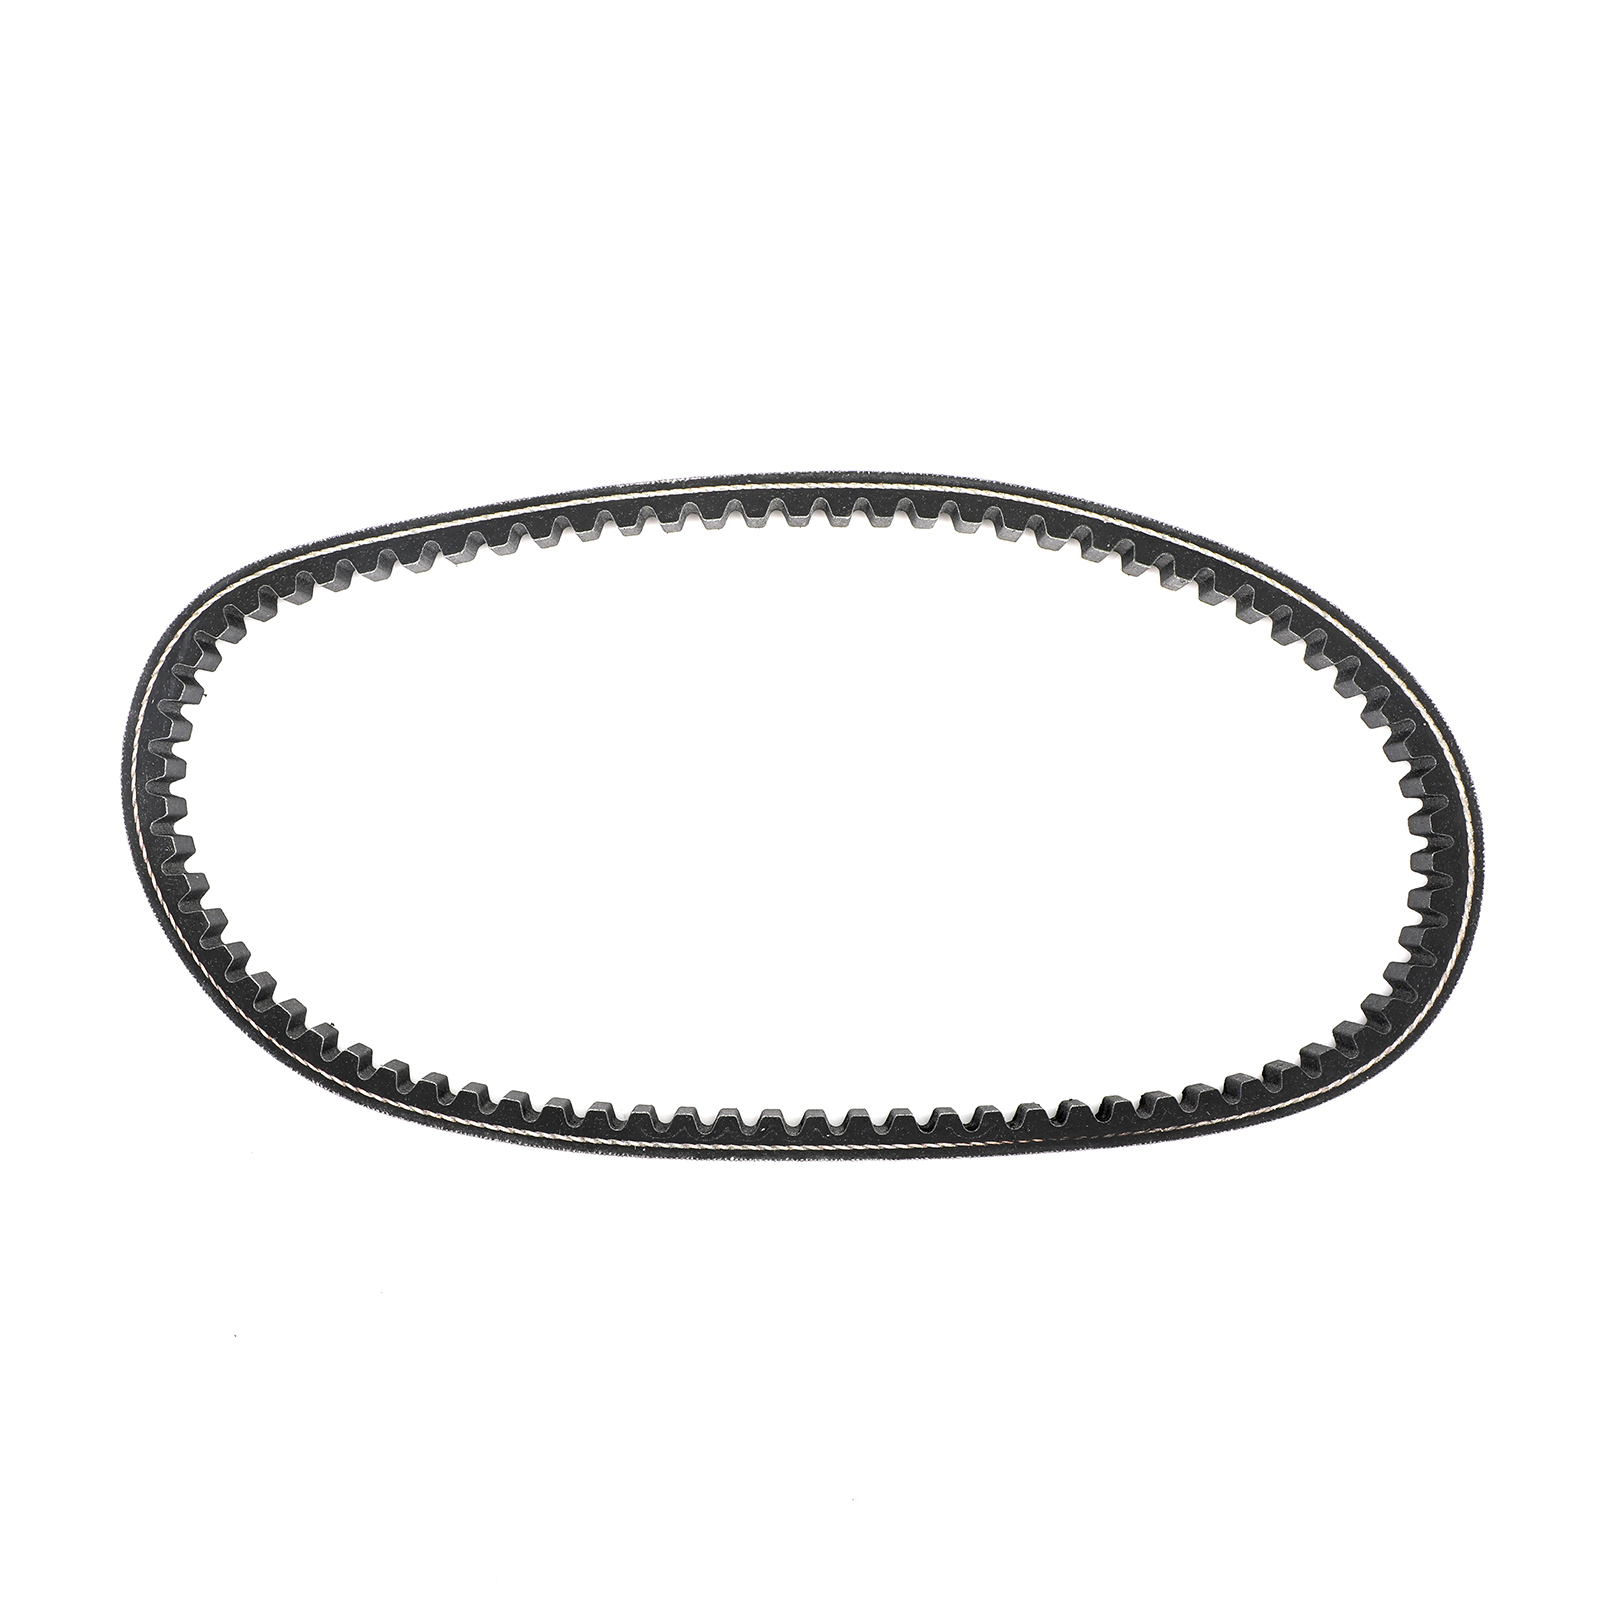 Primary Drive Clutch Belt For Yamaha YFM300 Grizzly 300 12